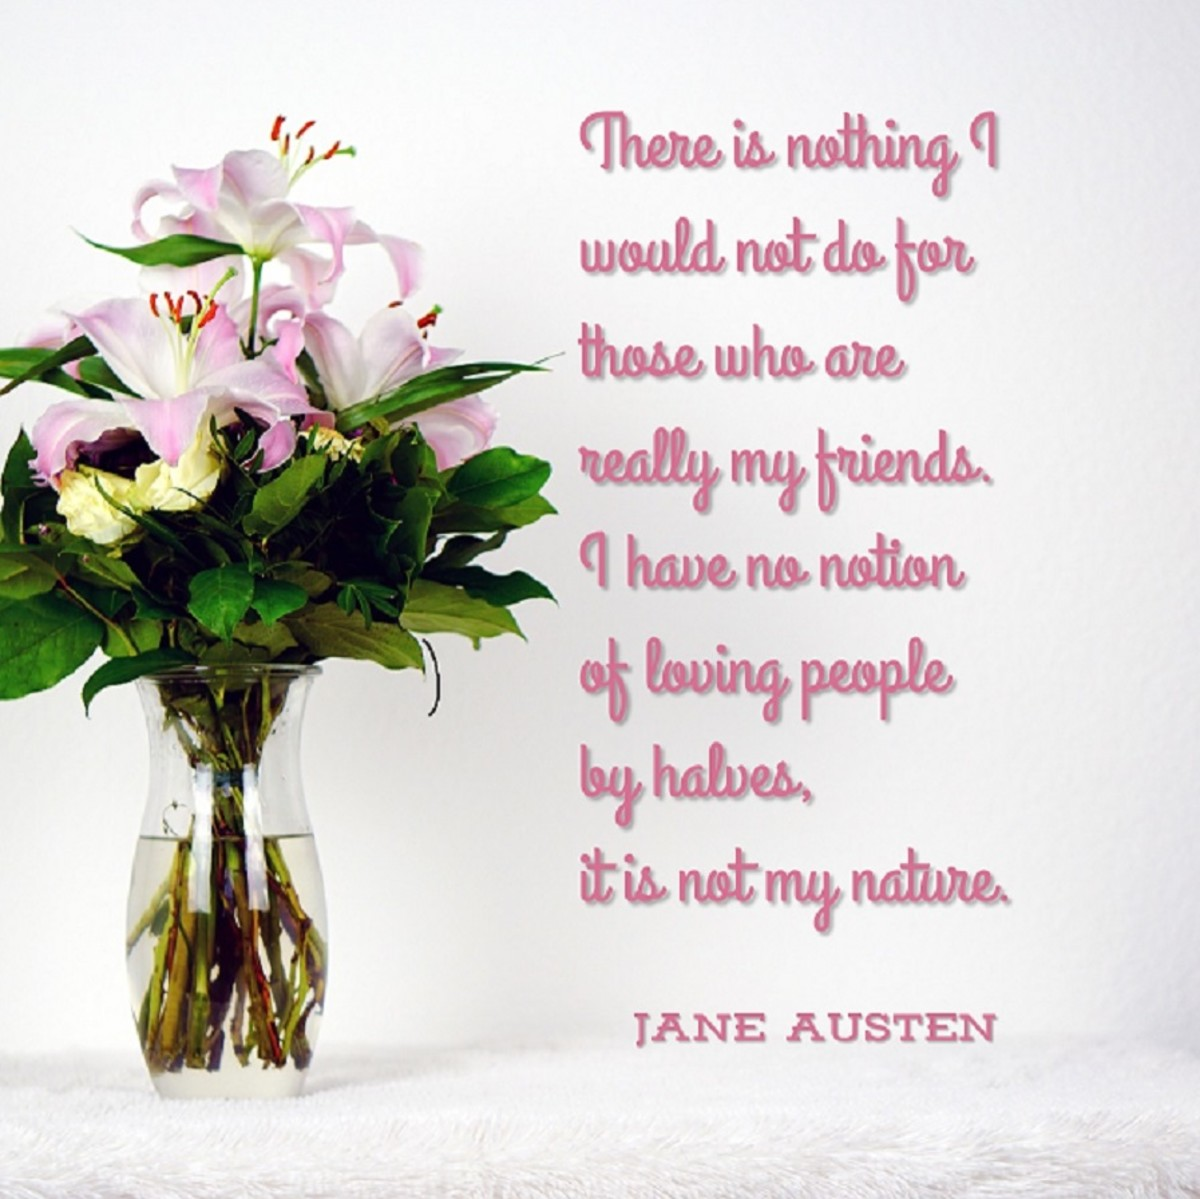 There is nothing I would not do for those who are really my friends. Jane Austen